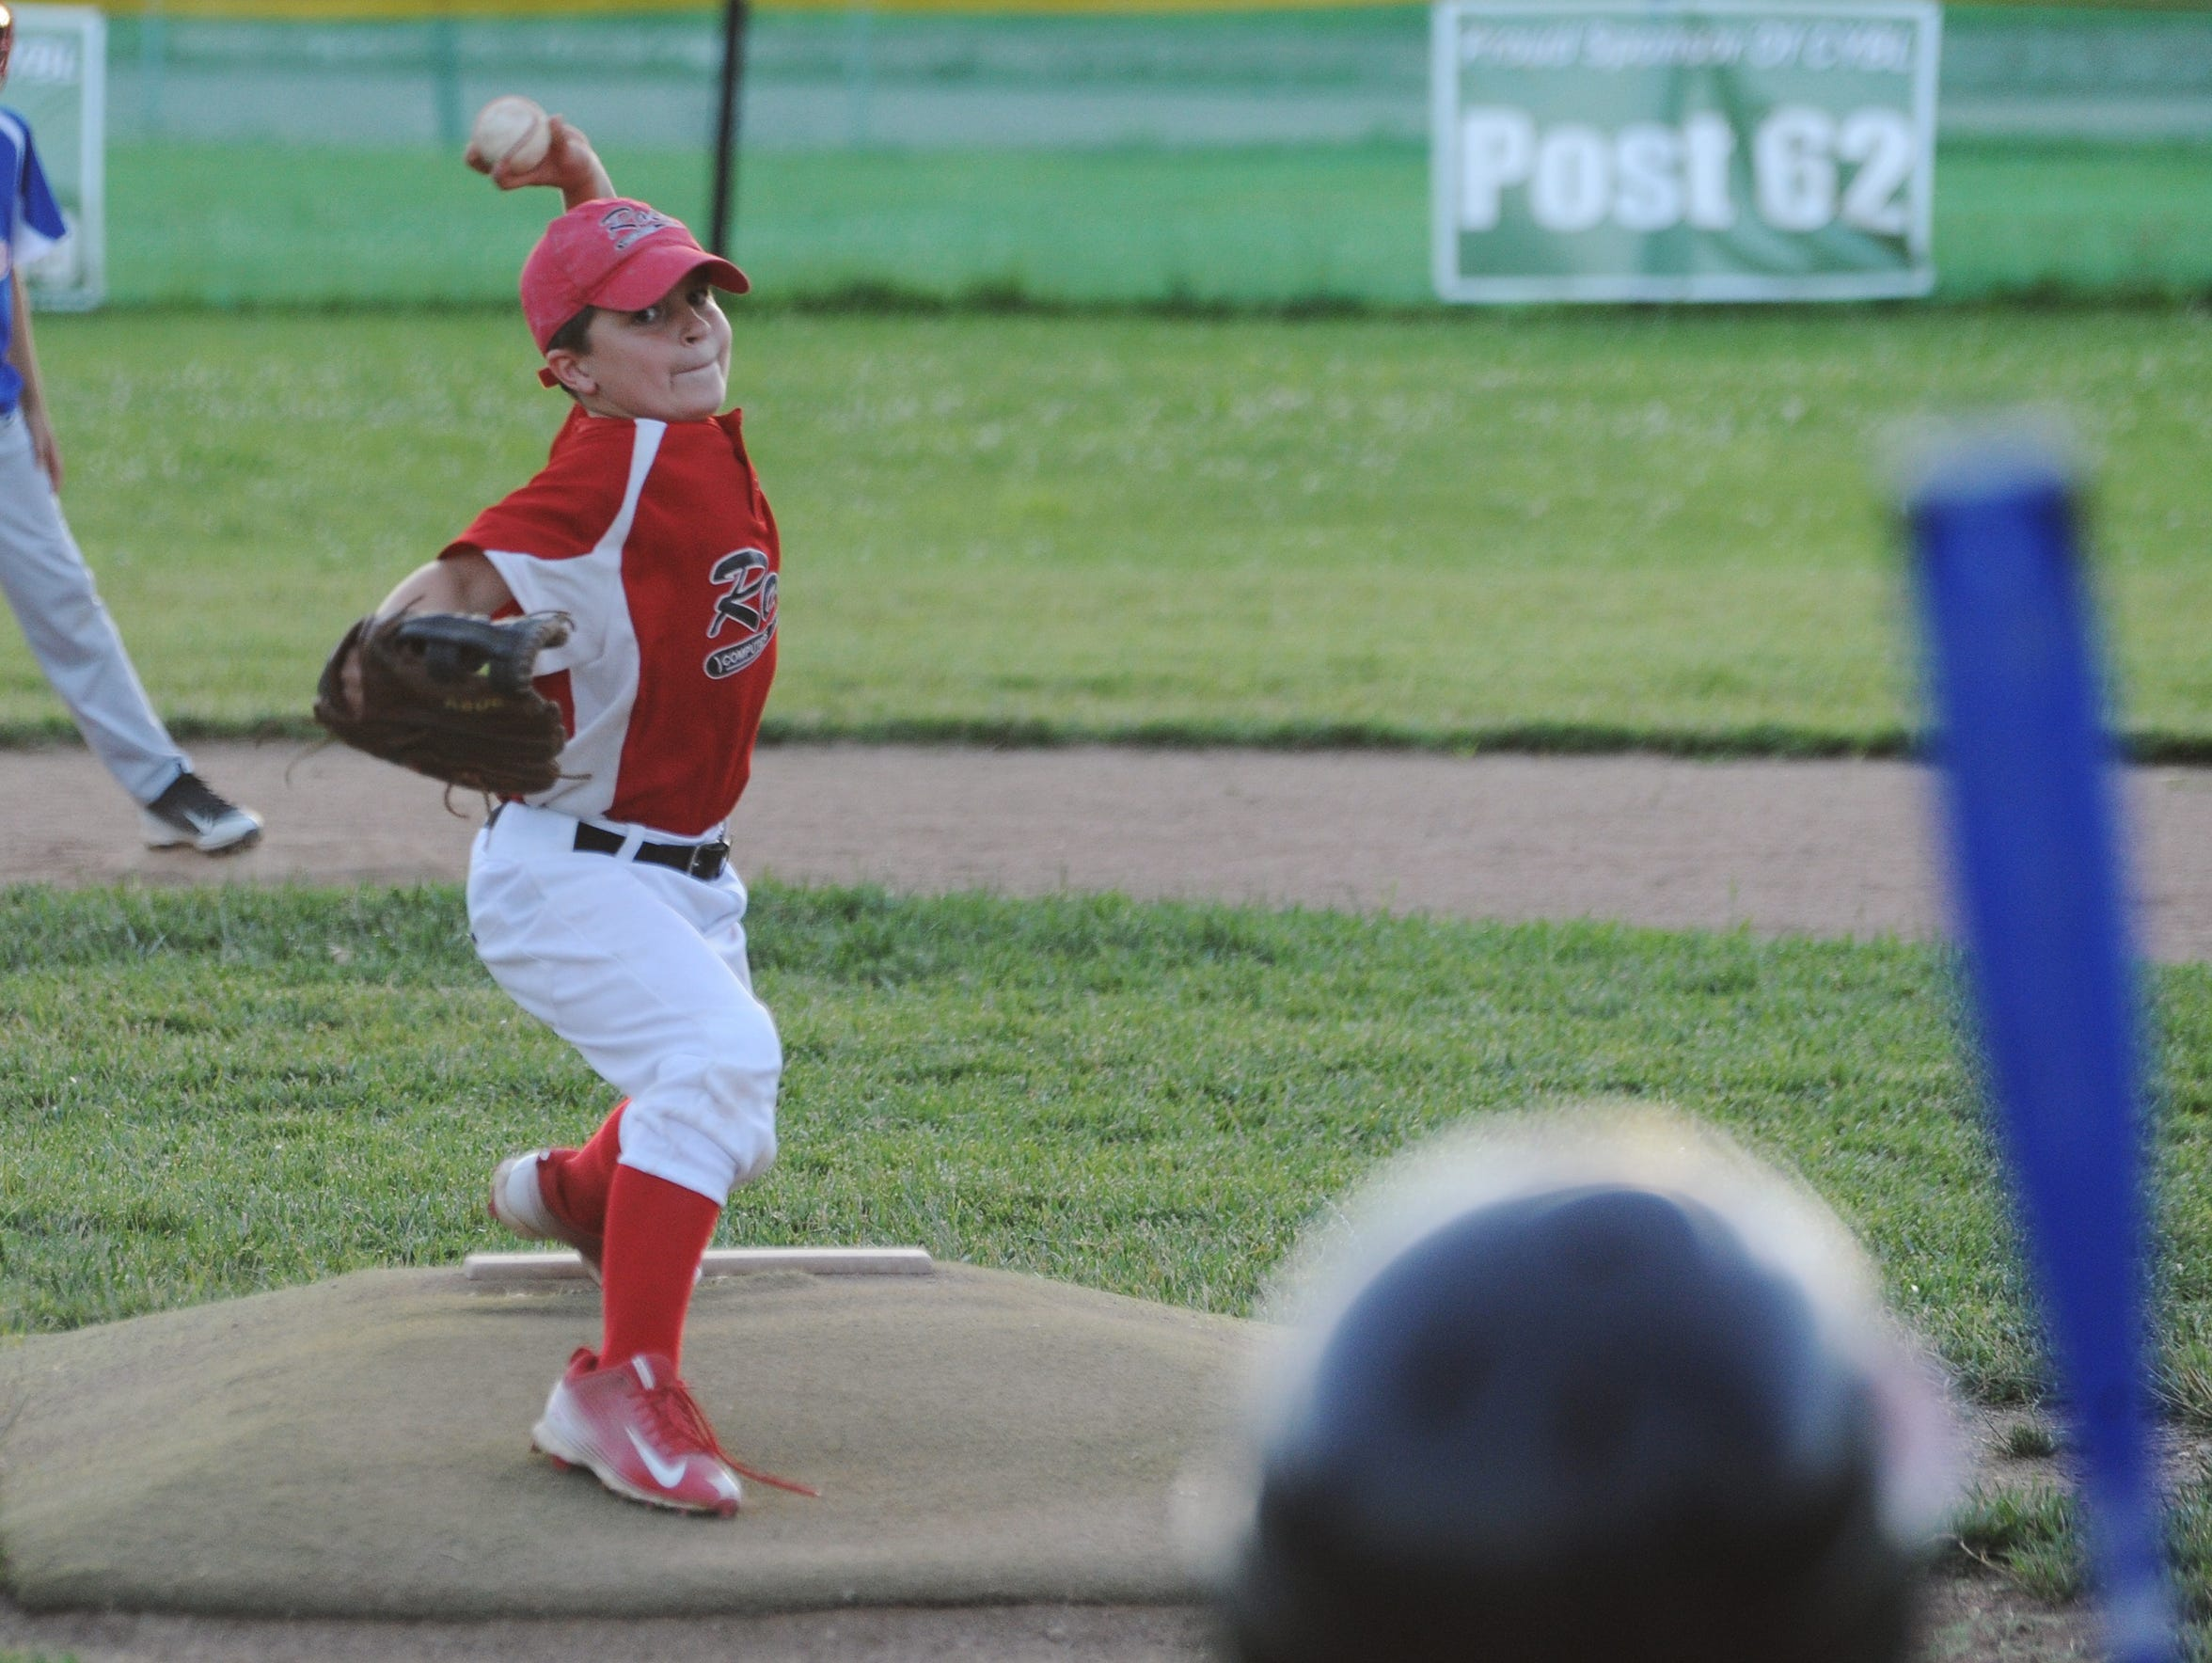 Austin Magill pitches during a game Tuesday, June 7,